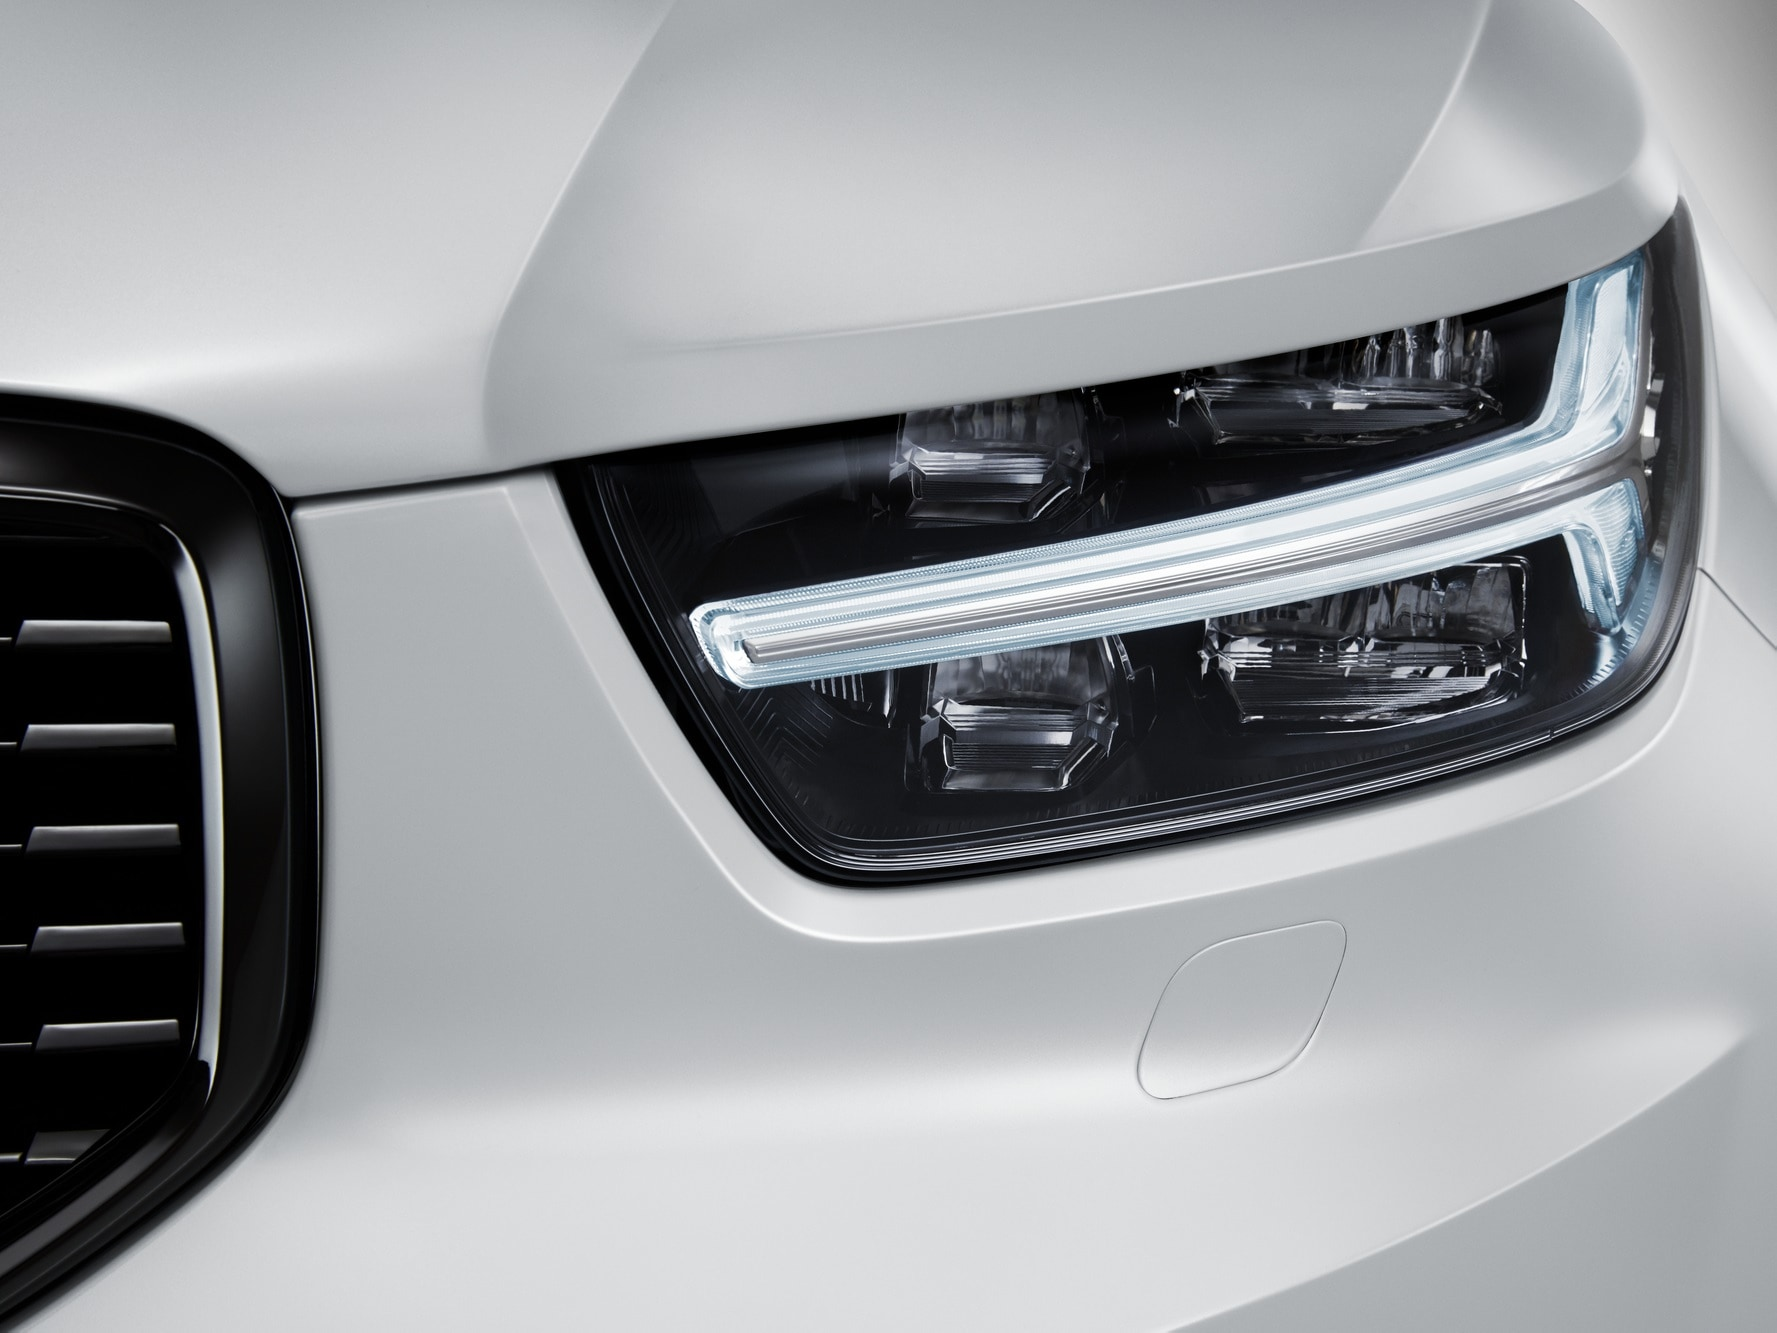 Front view of headlight lamp of Volvo XC40